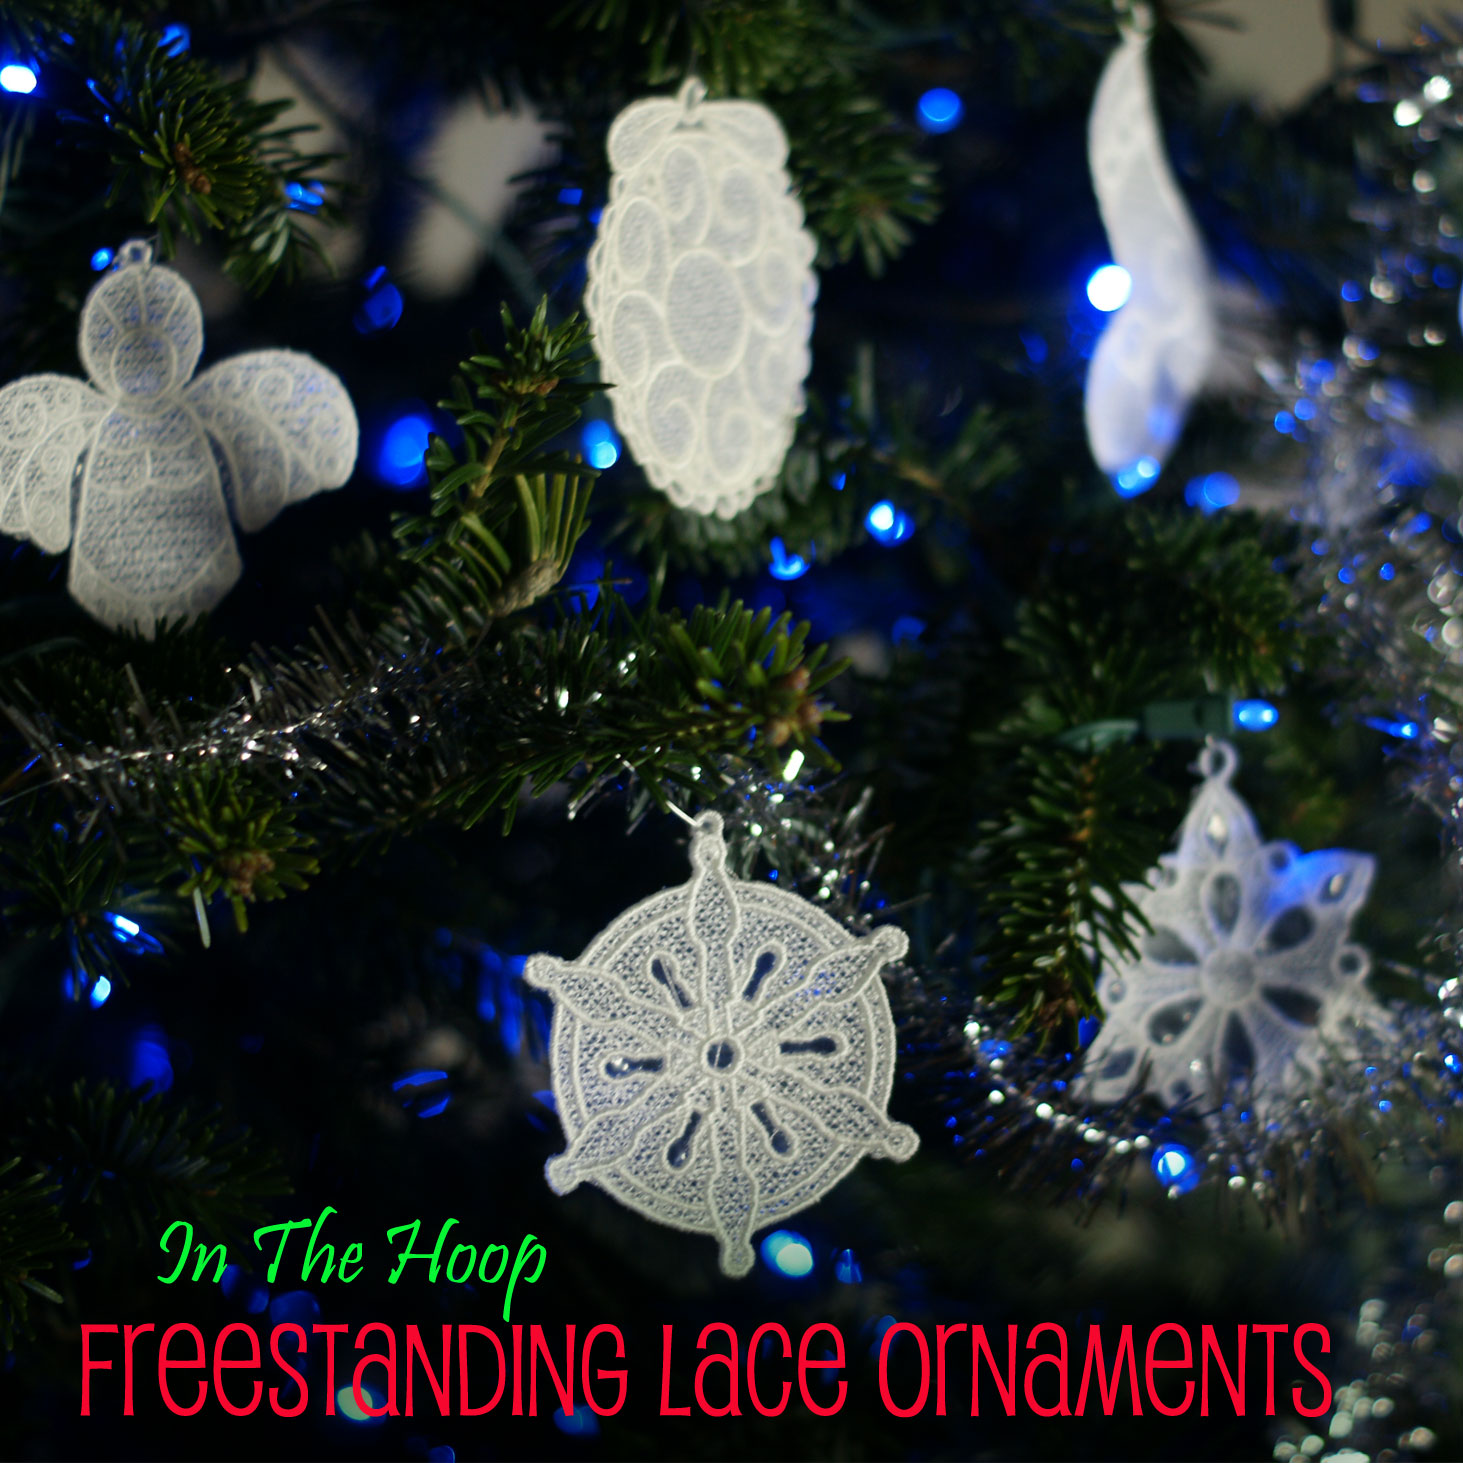 Christmas name ornaments - Your Cart Contents